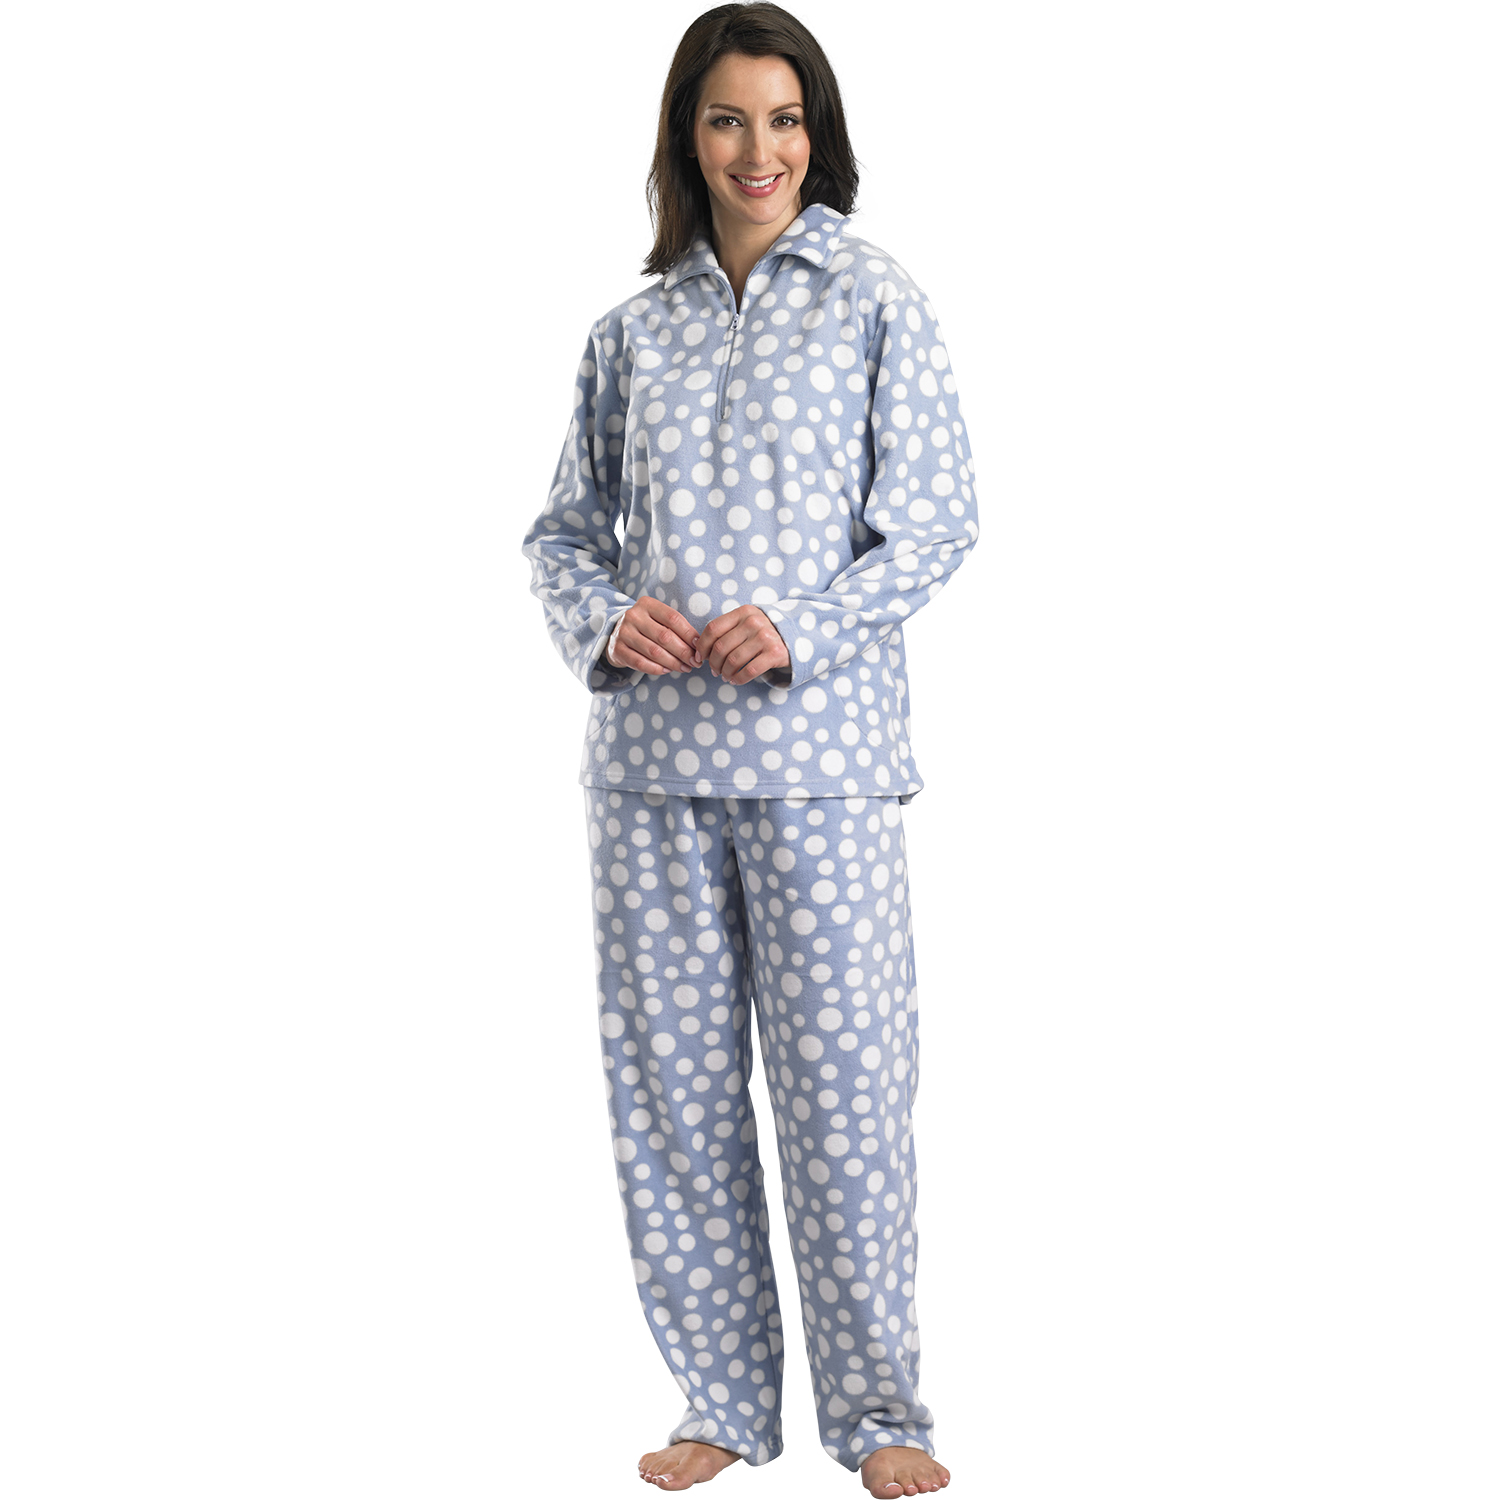 Buy Pajamas and Robes at Macy's and get FREE SHIPPING with $99 purchase! Great selection of night gowns, pajamas and other sleepwear for women.